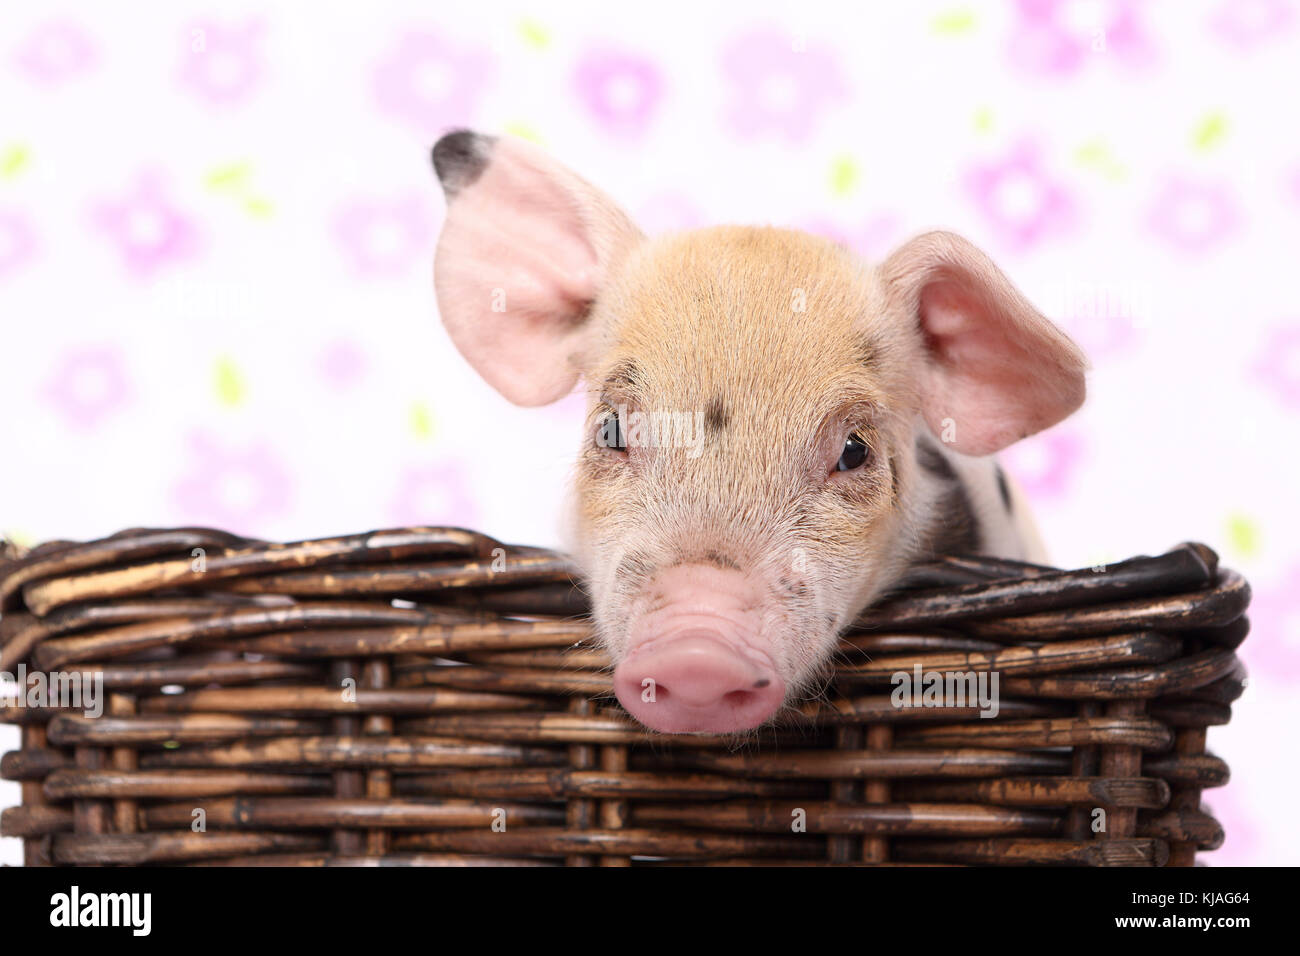 Domestic Pig, Turopolje x ?. Piglet in a basket. Studio picture seen against a white background with flower print. - Stock Image